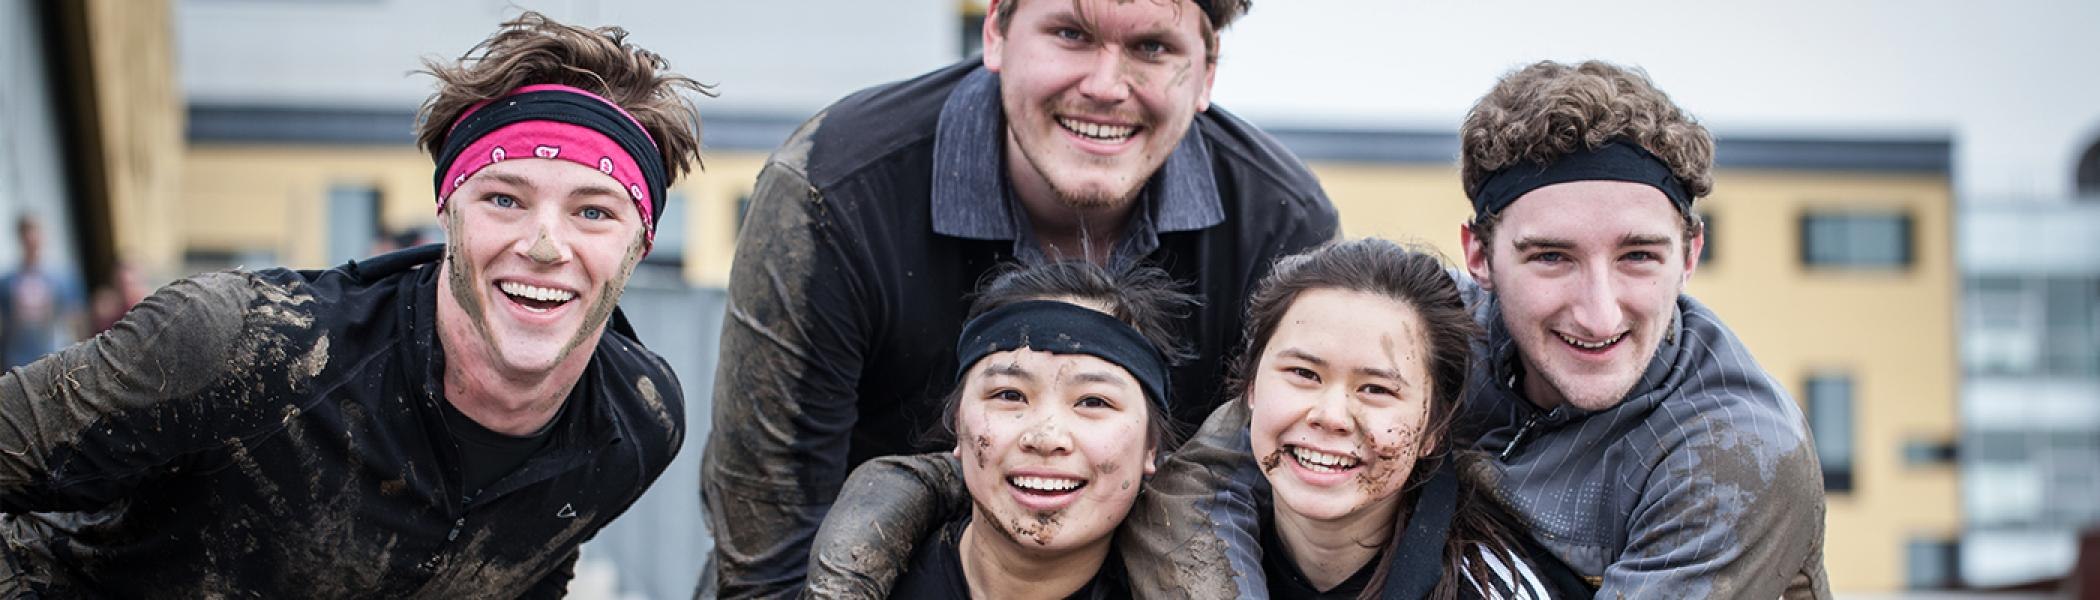 5 students partially cover in mud smiling at the camera